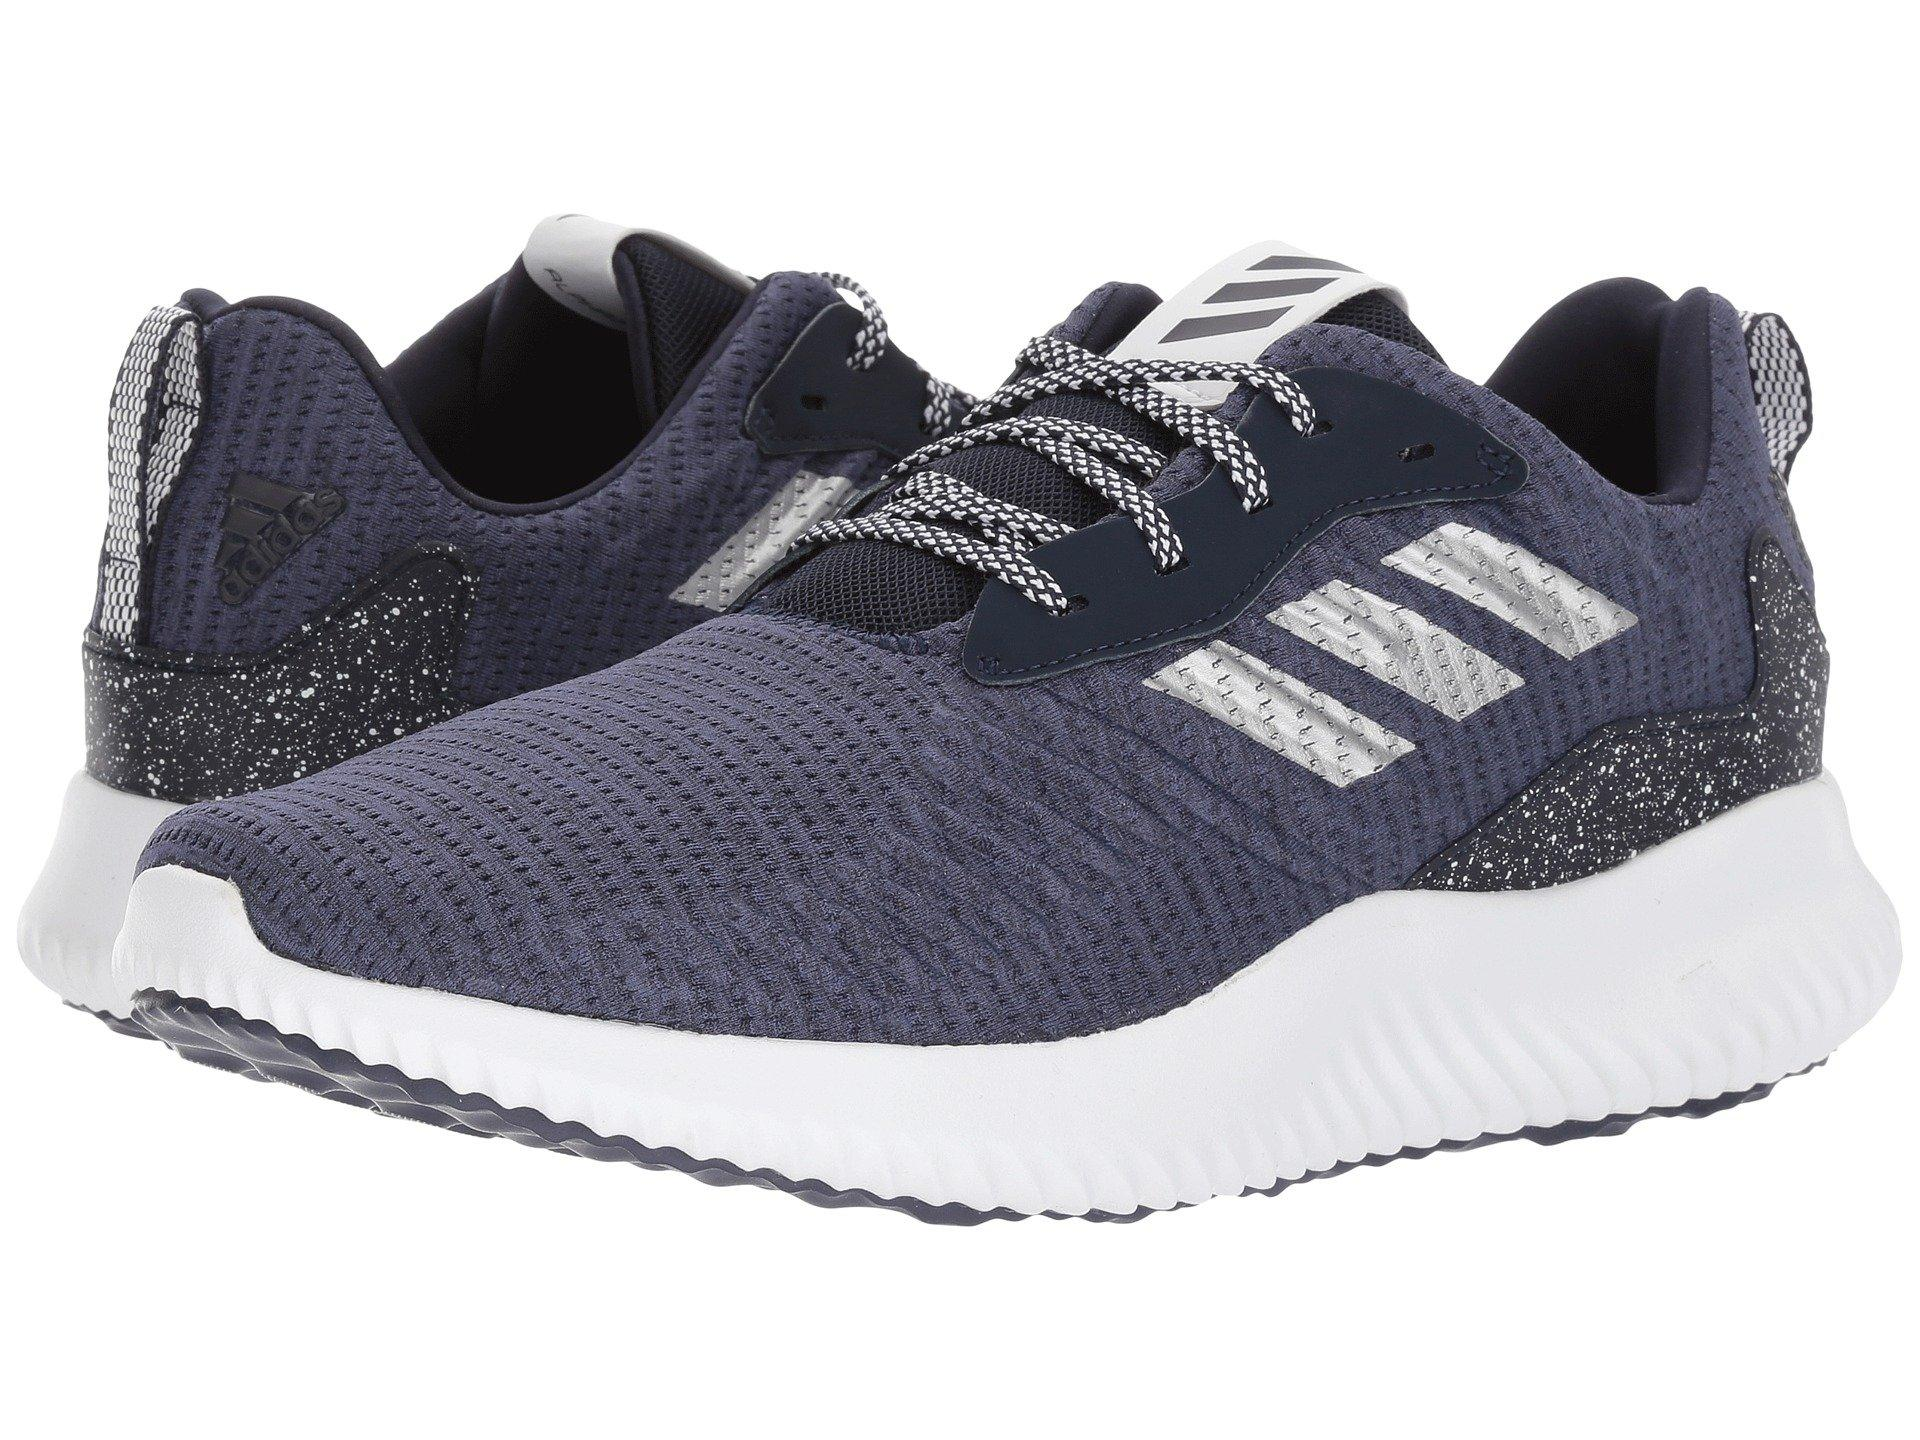 0ee1478762 Adidas Originals Alphabounce Rc In Trace Blue/Super Purple/Footwear White